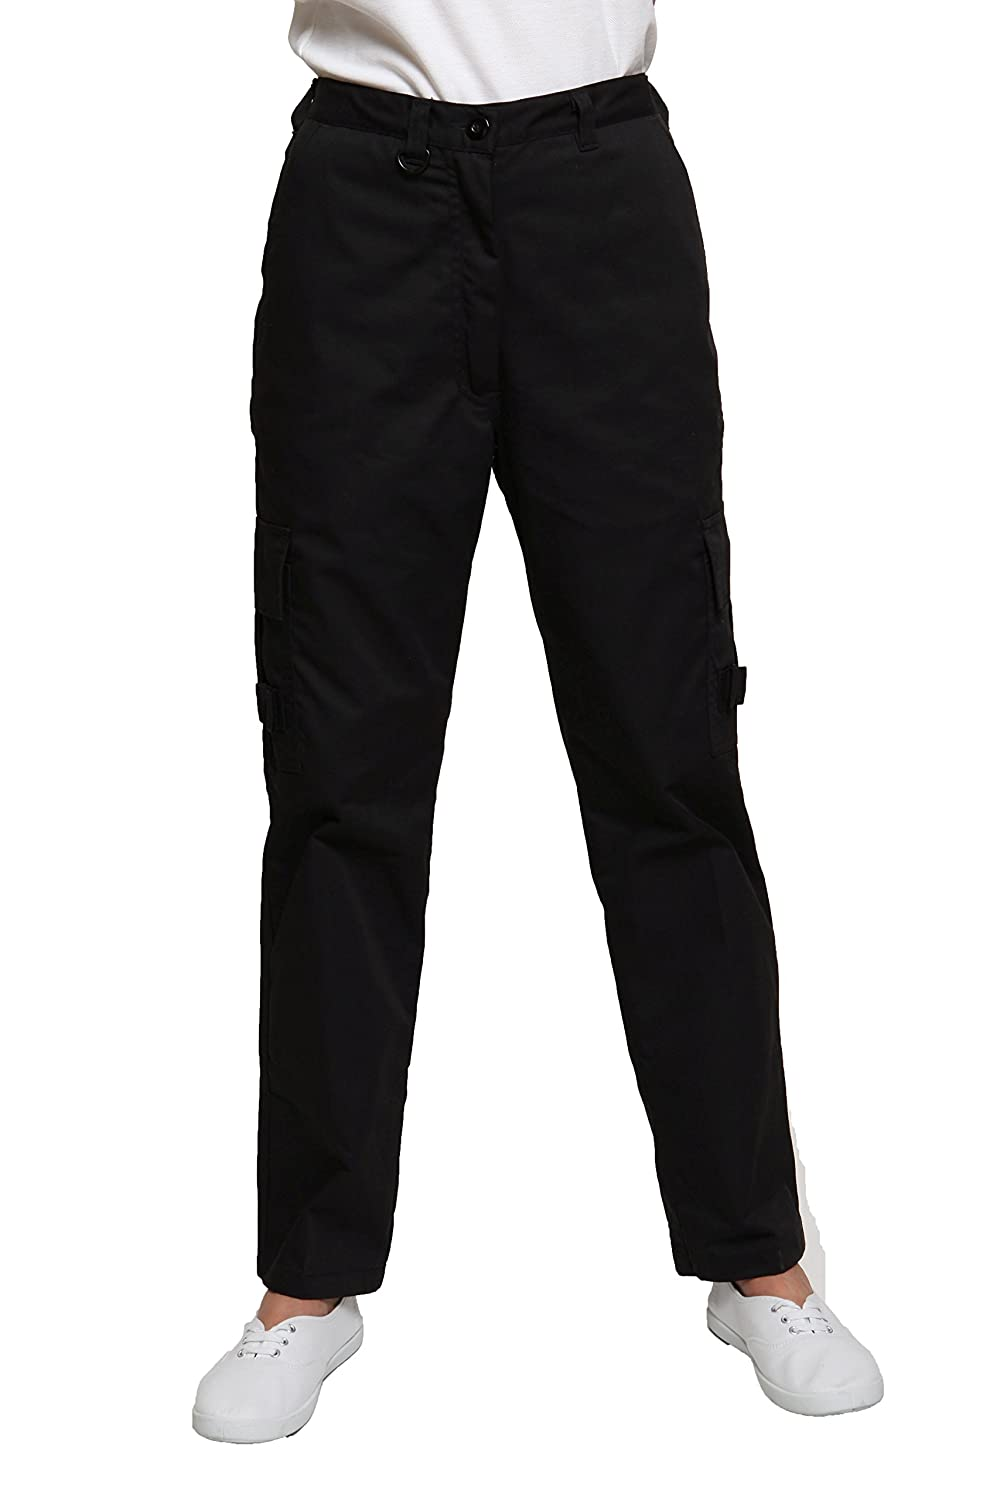 Ladies Cargo Combat Work Trousers Size 8 to 22 By SITE KING ...